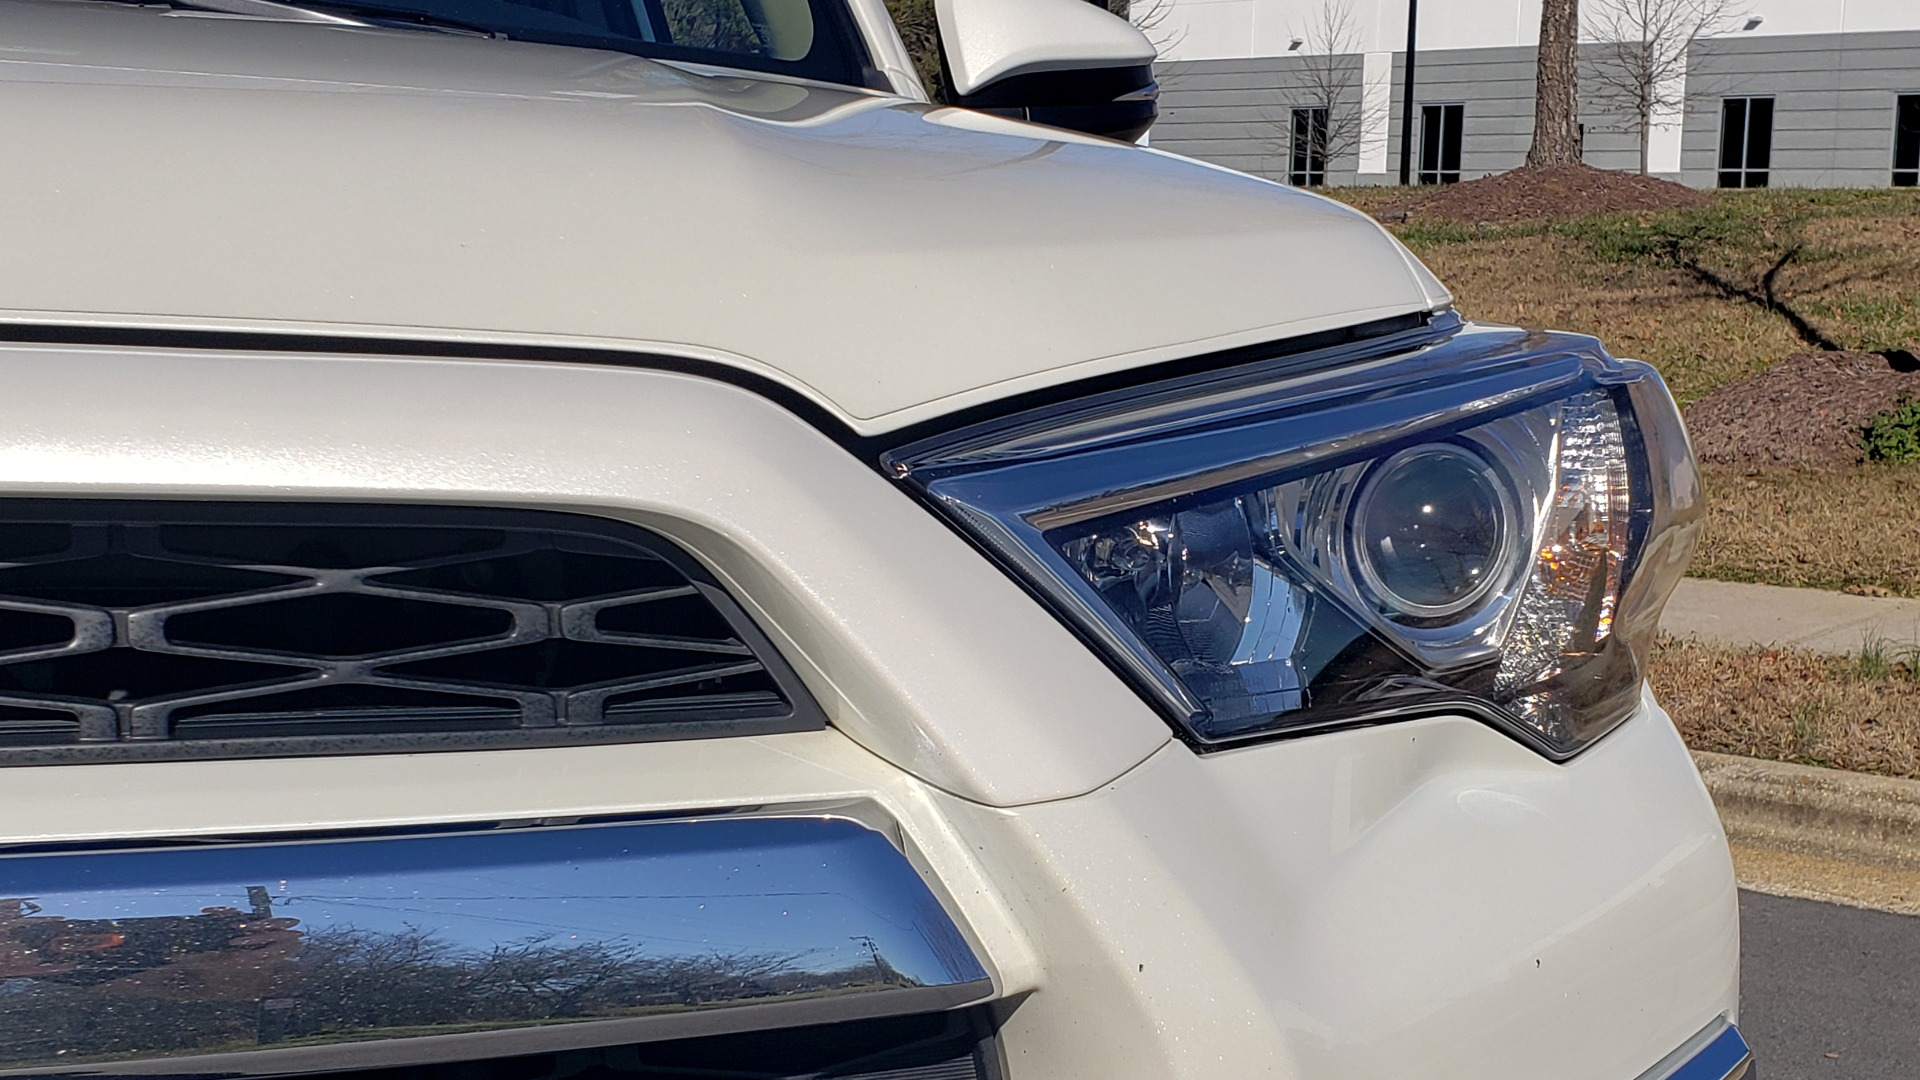 Used 2018 Toyota 4RUNNER LIMITED 4X4 / 4.0L V6 / AUTO / NAV / SUNROOF / JBL AUDIO / REARVIEW for sale Sold at Formula Imports in Charlotte NC 28227 20